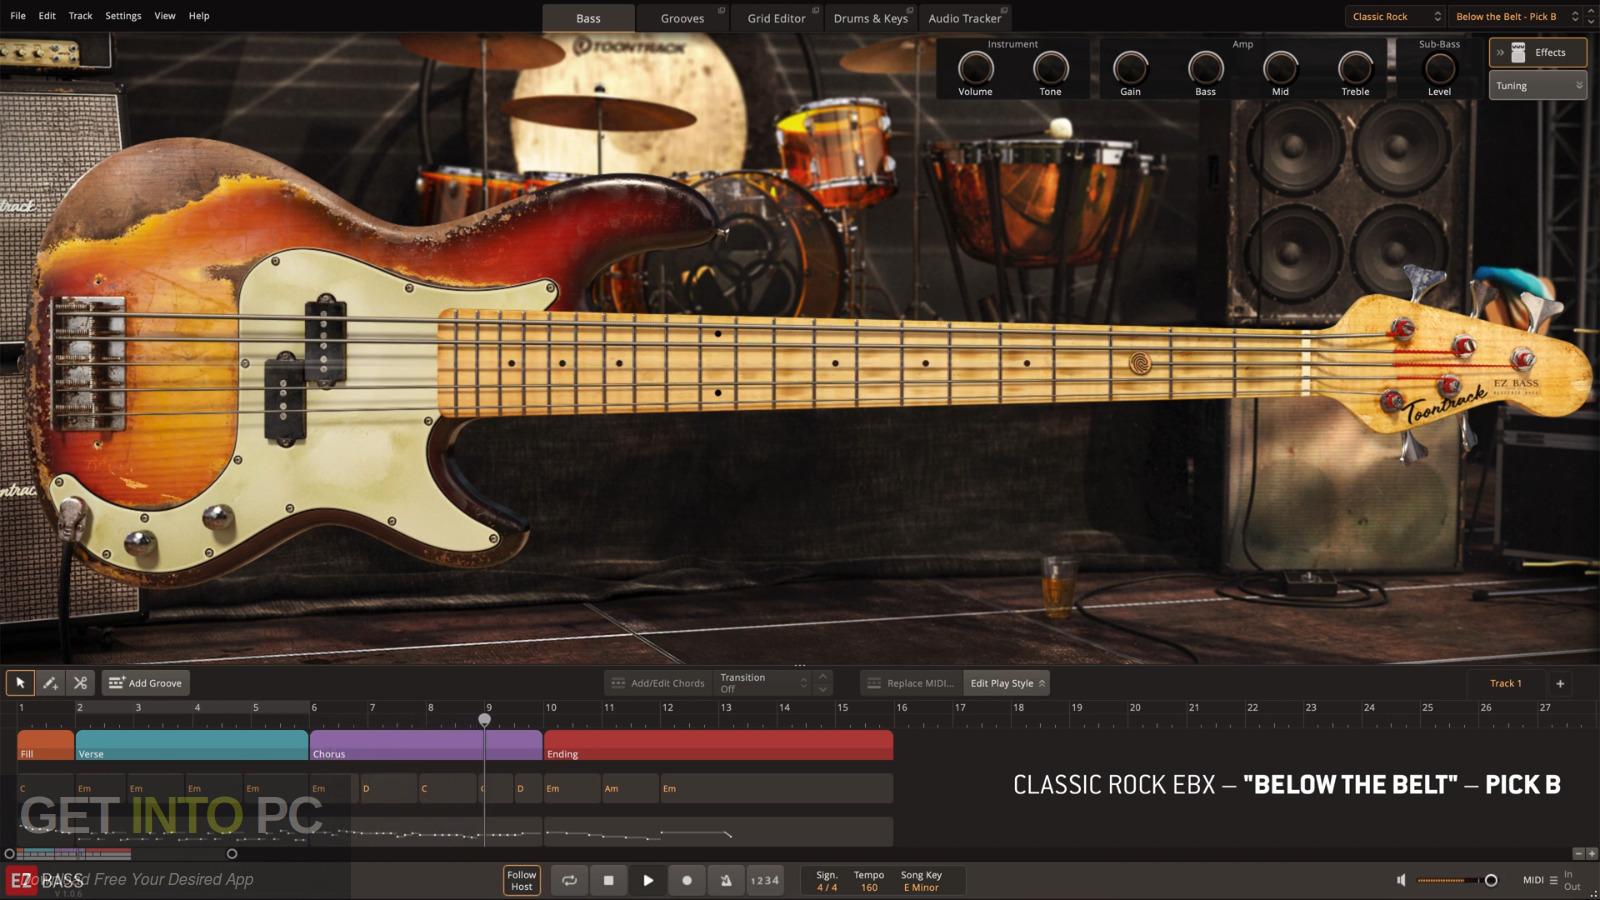 Toontrack Classic Rock EBX Latest Version Download GetIntoPC.com